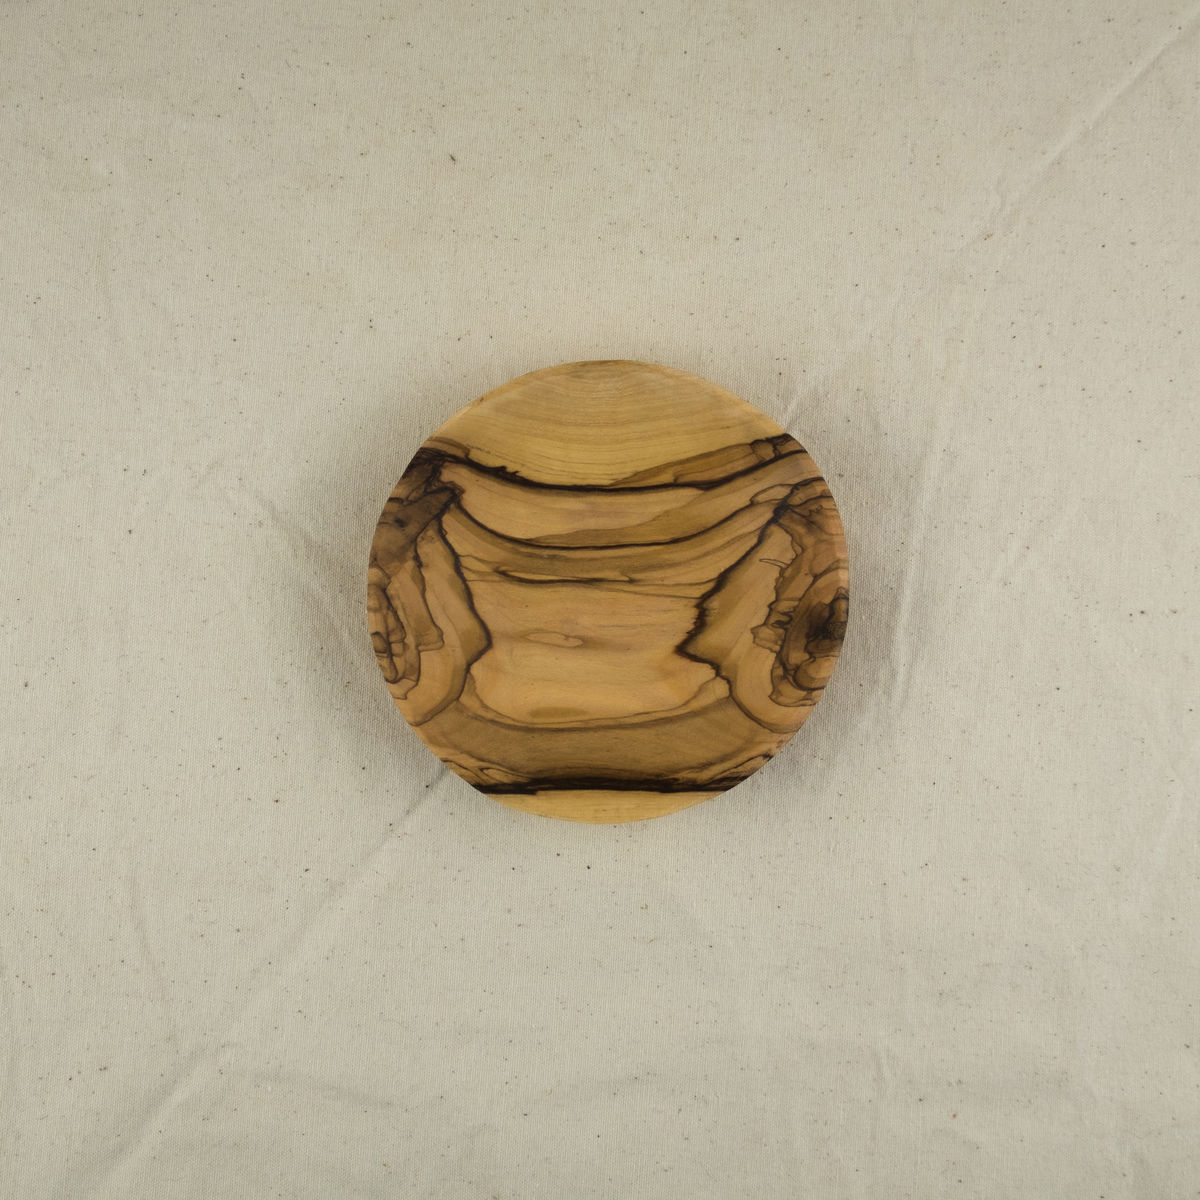 Olive wood small round bowl - Handcrafted in Palestine - product images  of